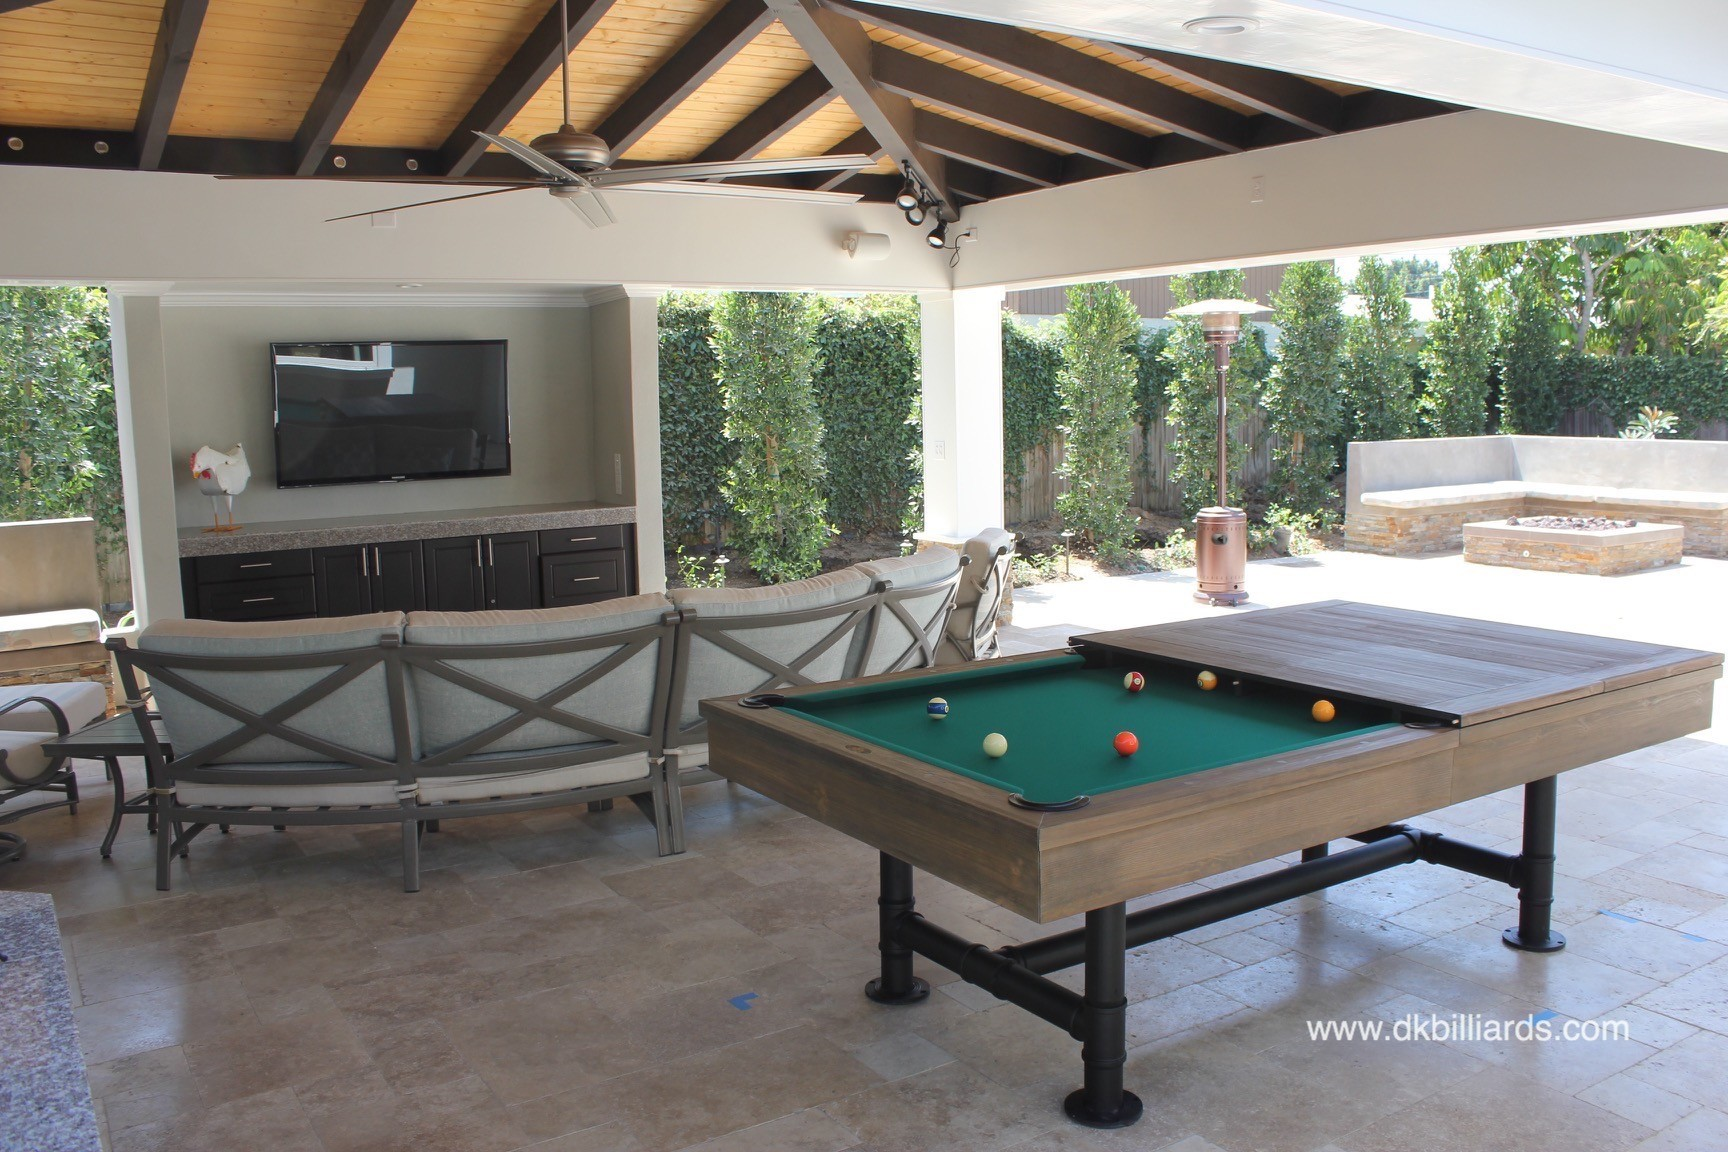 Rustic Dining Pool Table with Industrial Edge